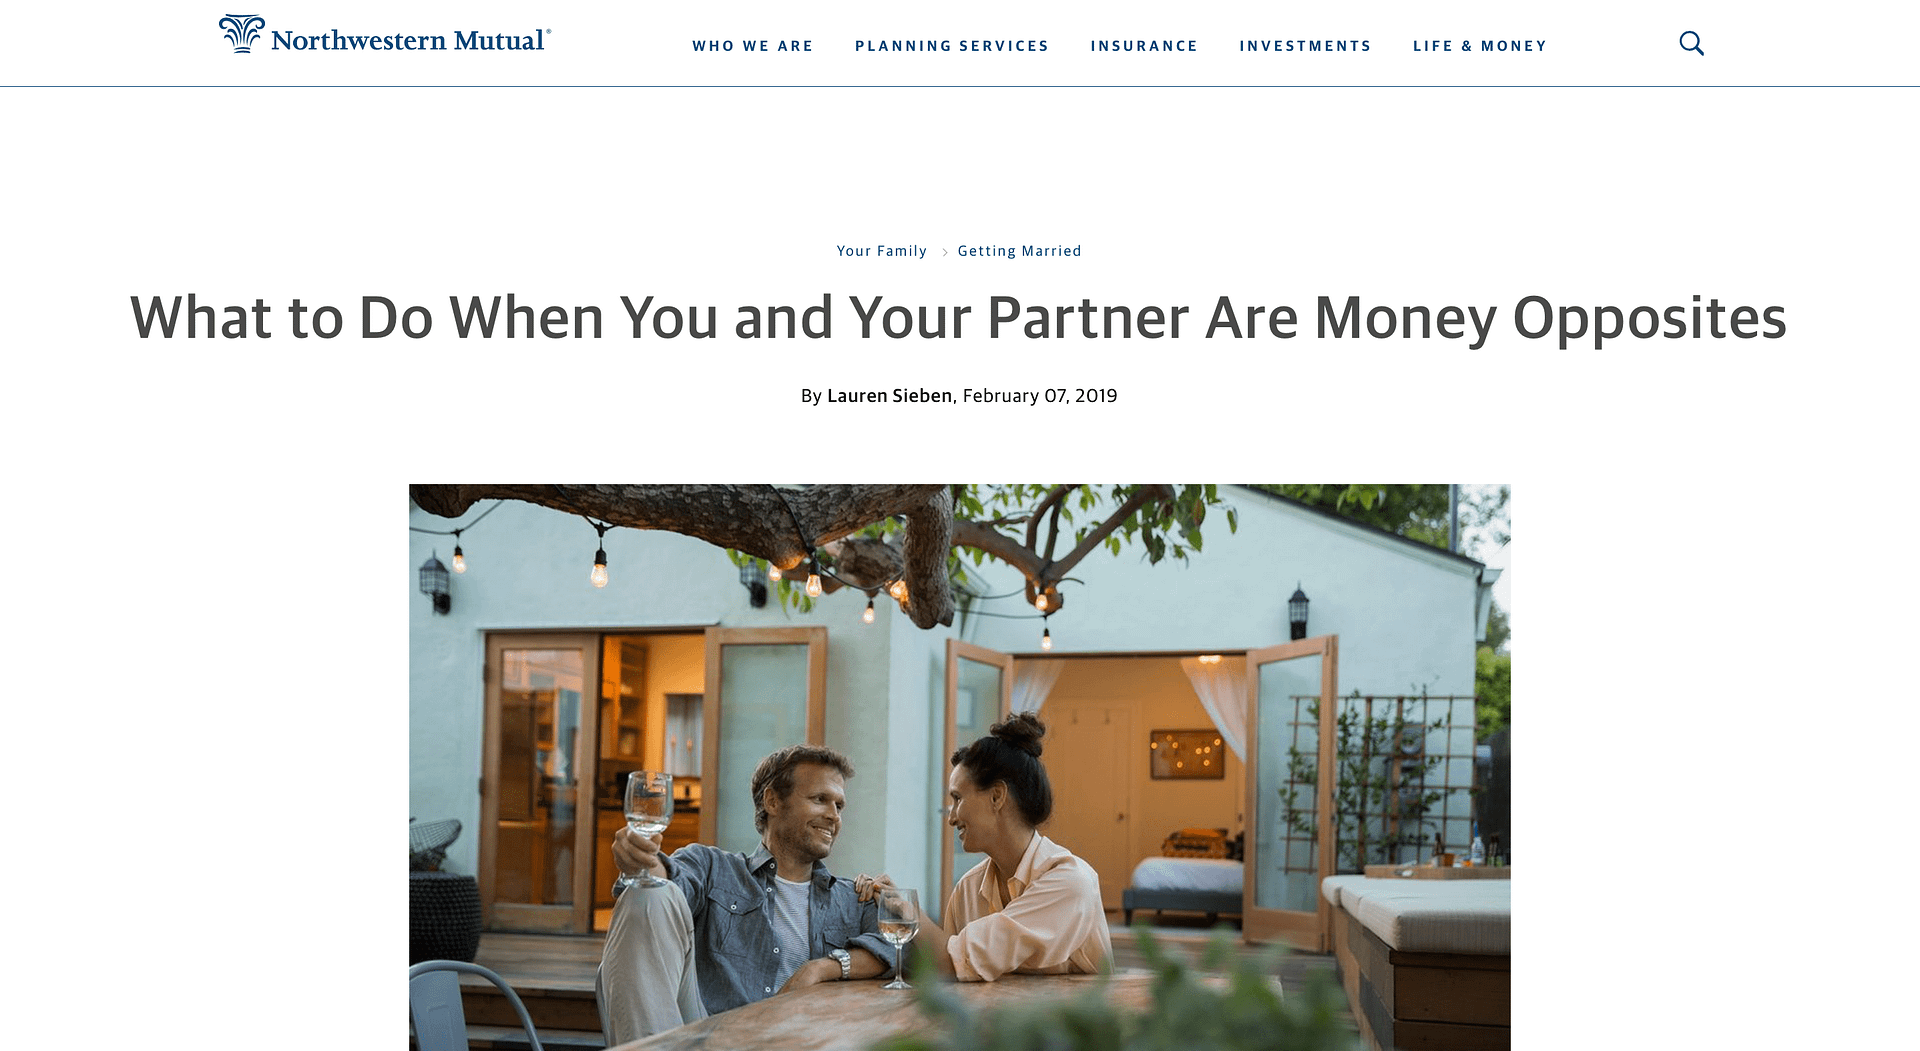 What to Do When You and Your Partner Are Money Opposites (Northwestern Mutual) | LPTG Quote